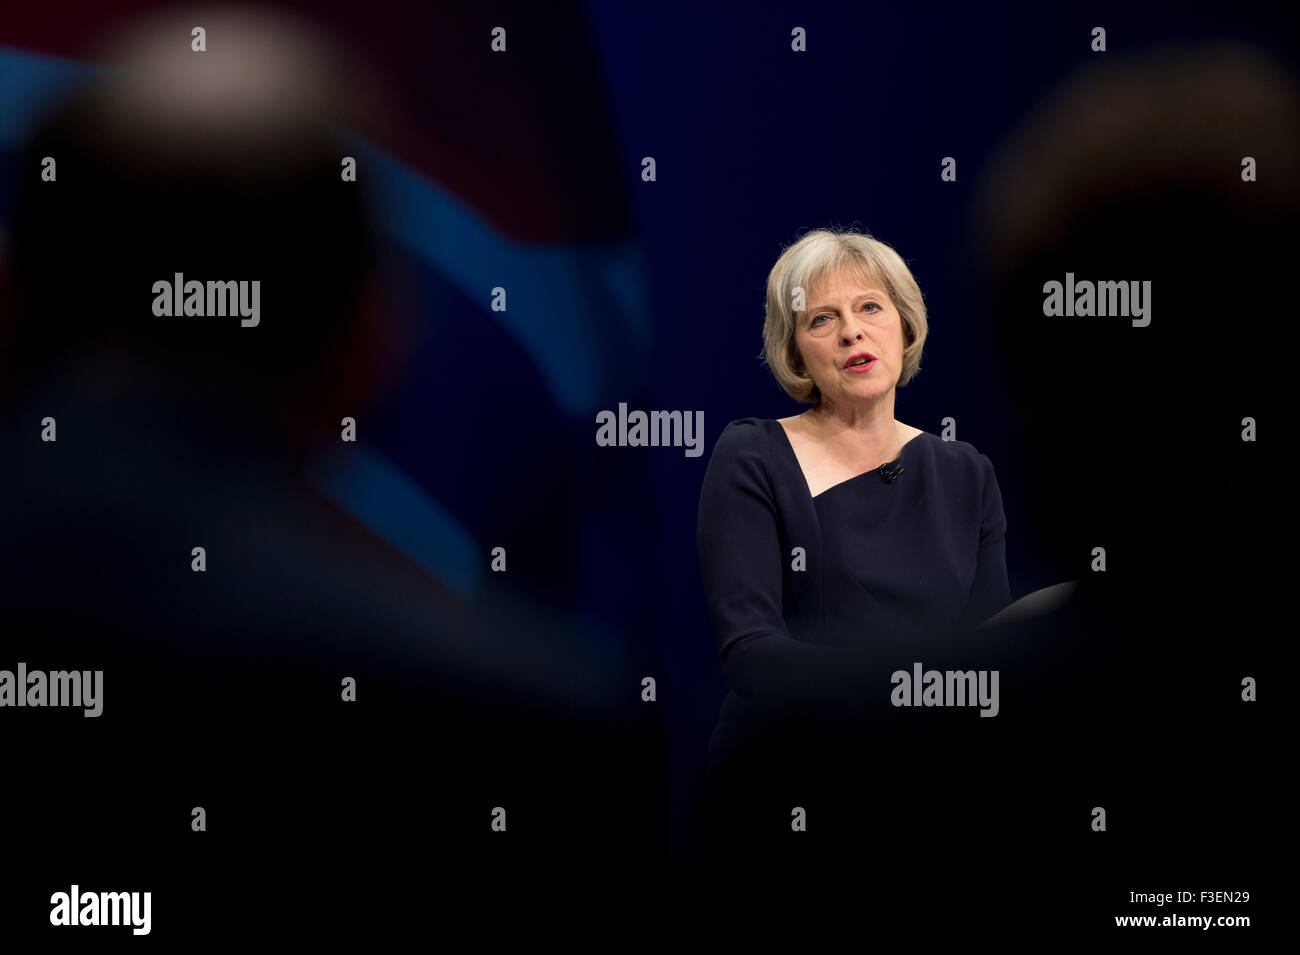 Manchester, UK. 6th October 2015. The Rt Hon Theresa May MP, Secretary of State for the Home Department speaks at - Stock Image